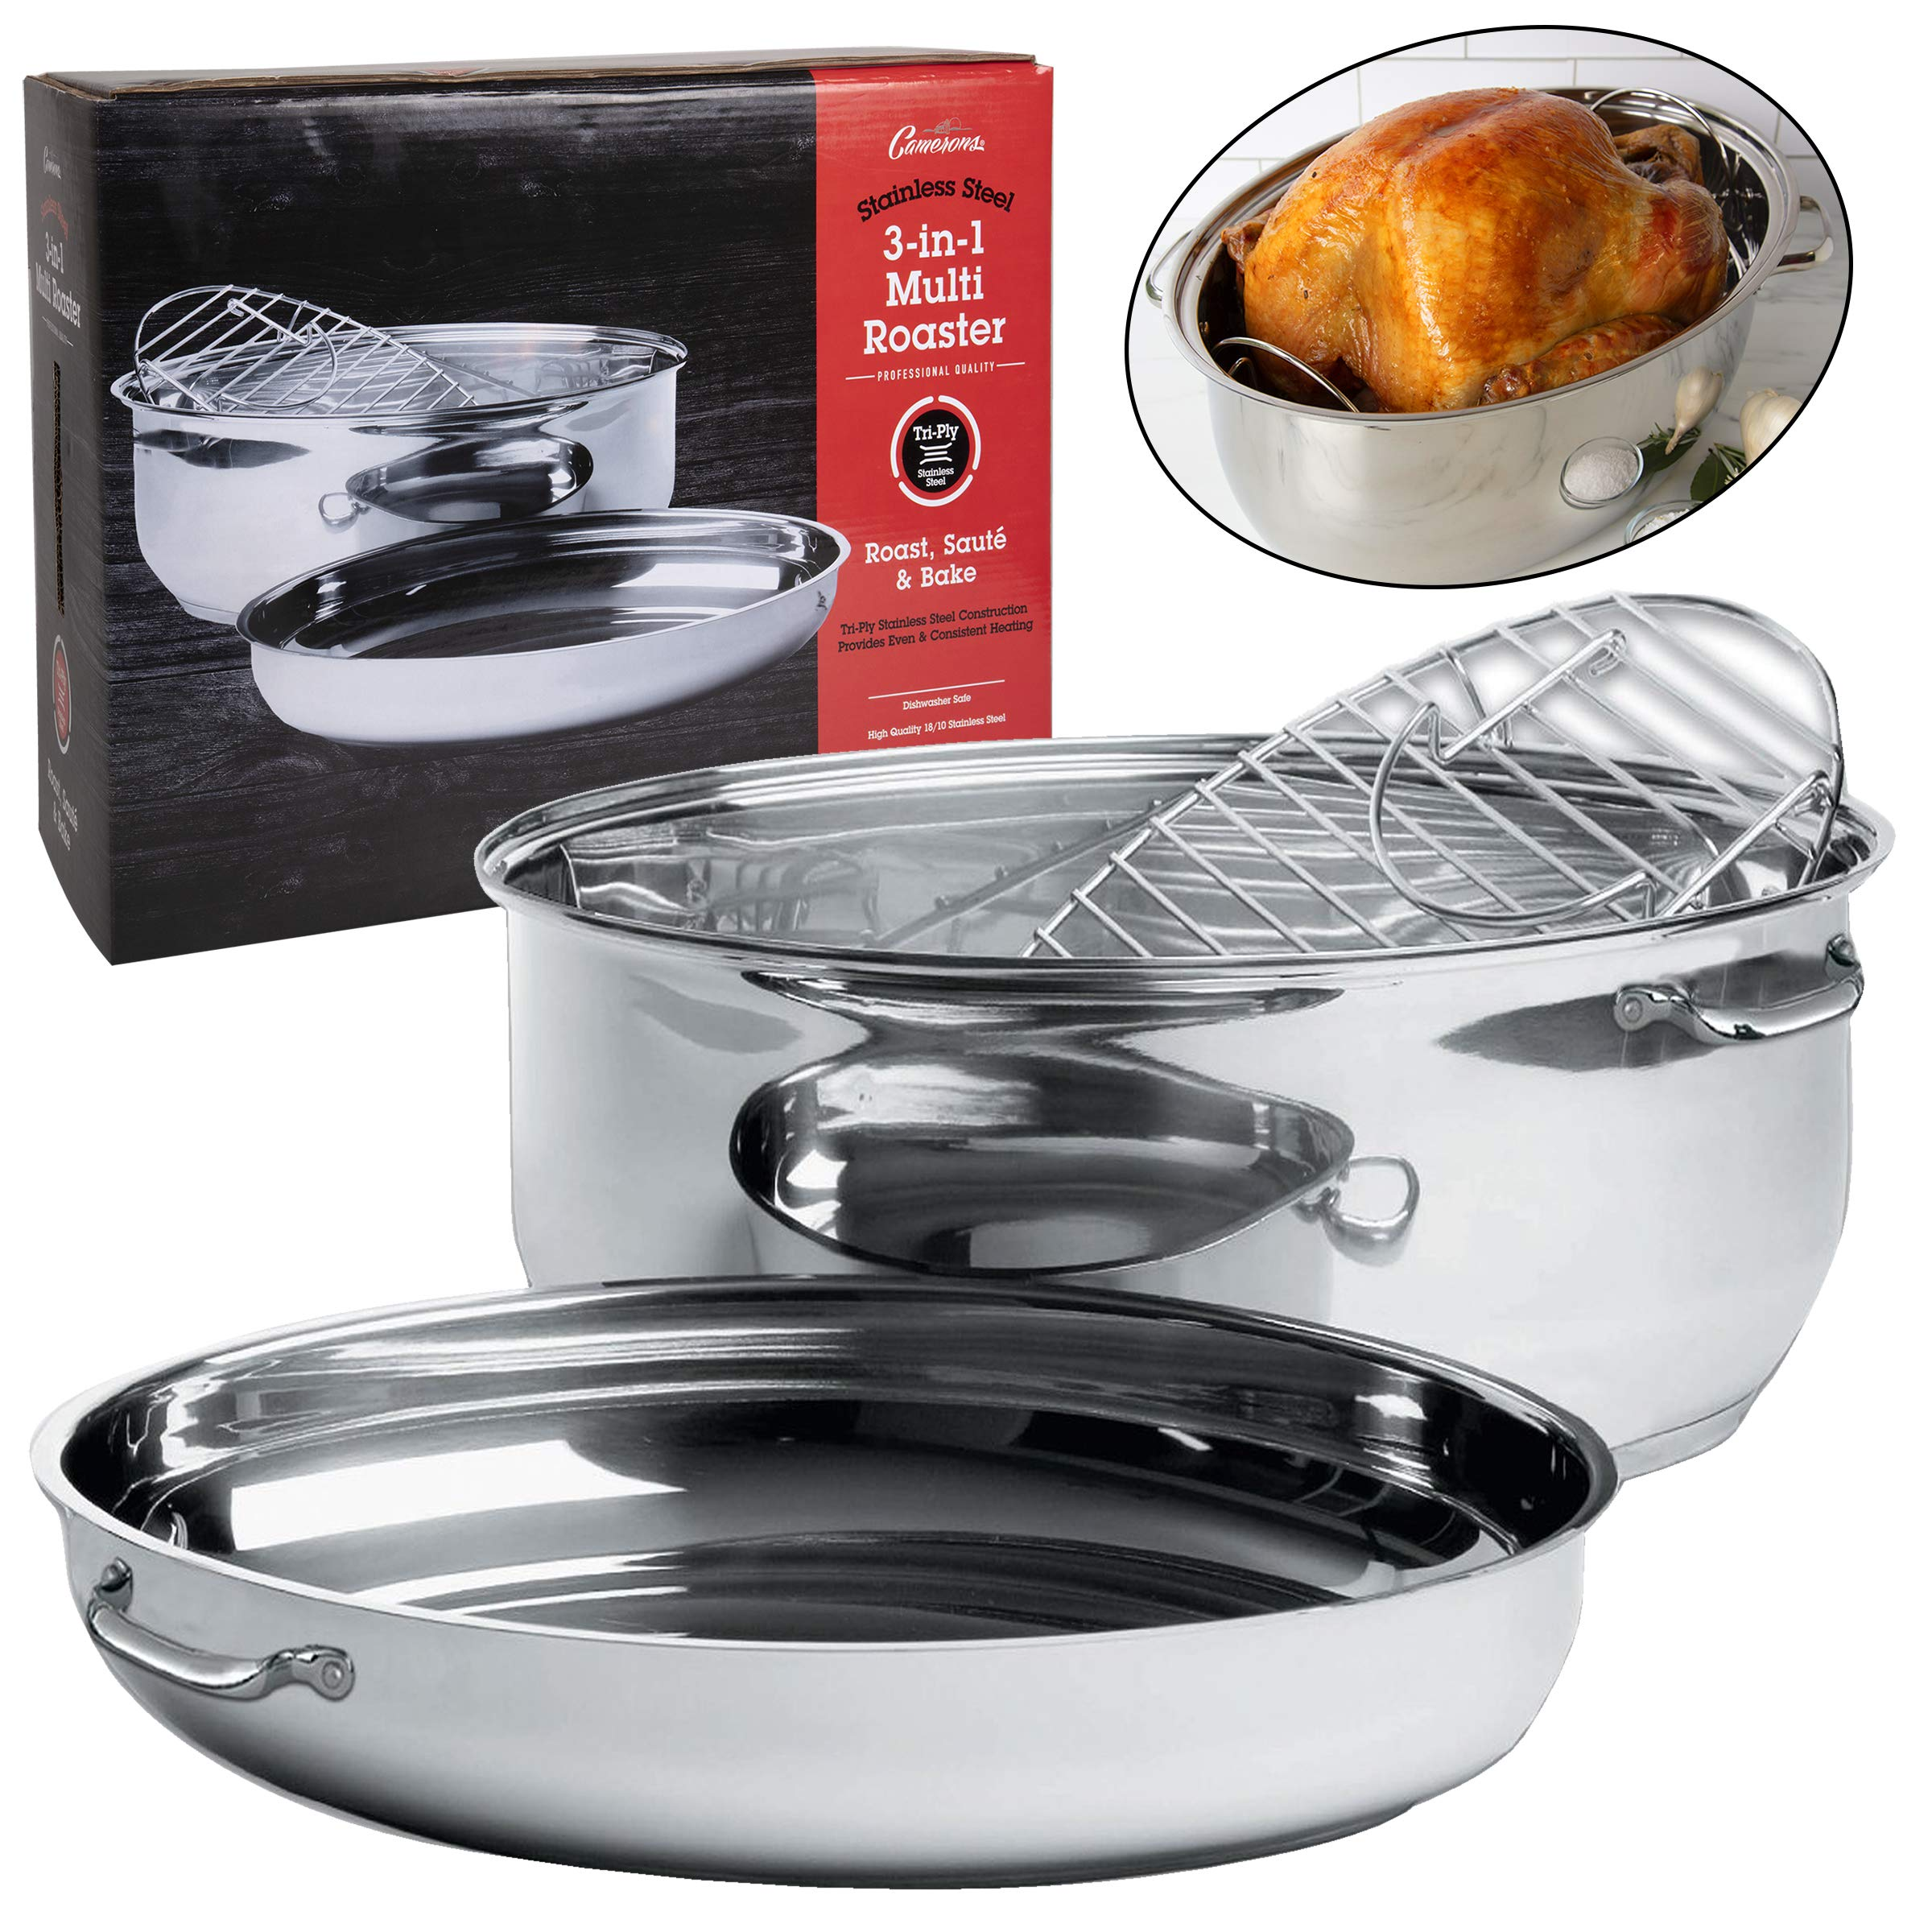 Camerons Oval Multi Roaster- 3-in-1 Stock Pot (11 QT), Roasting Pan w Rack and Saute Cookware- Stainless Steel Tri Ply, Induction Compatible w Stick Resistant Interior by Camerons Products